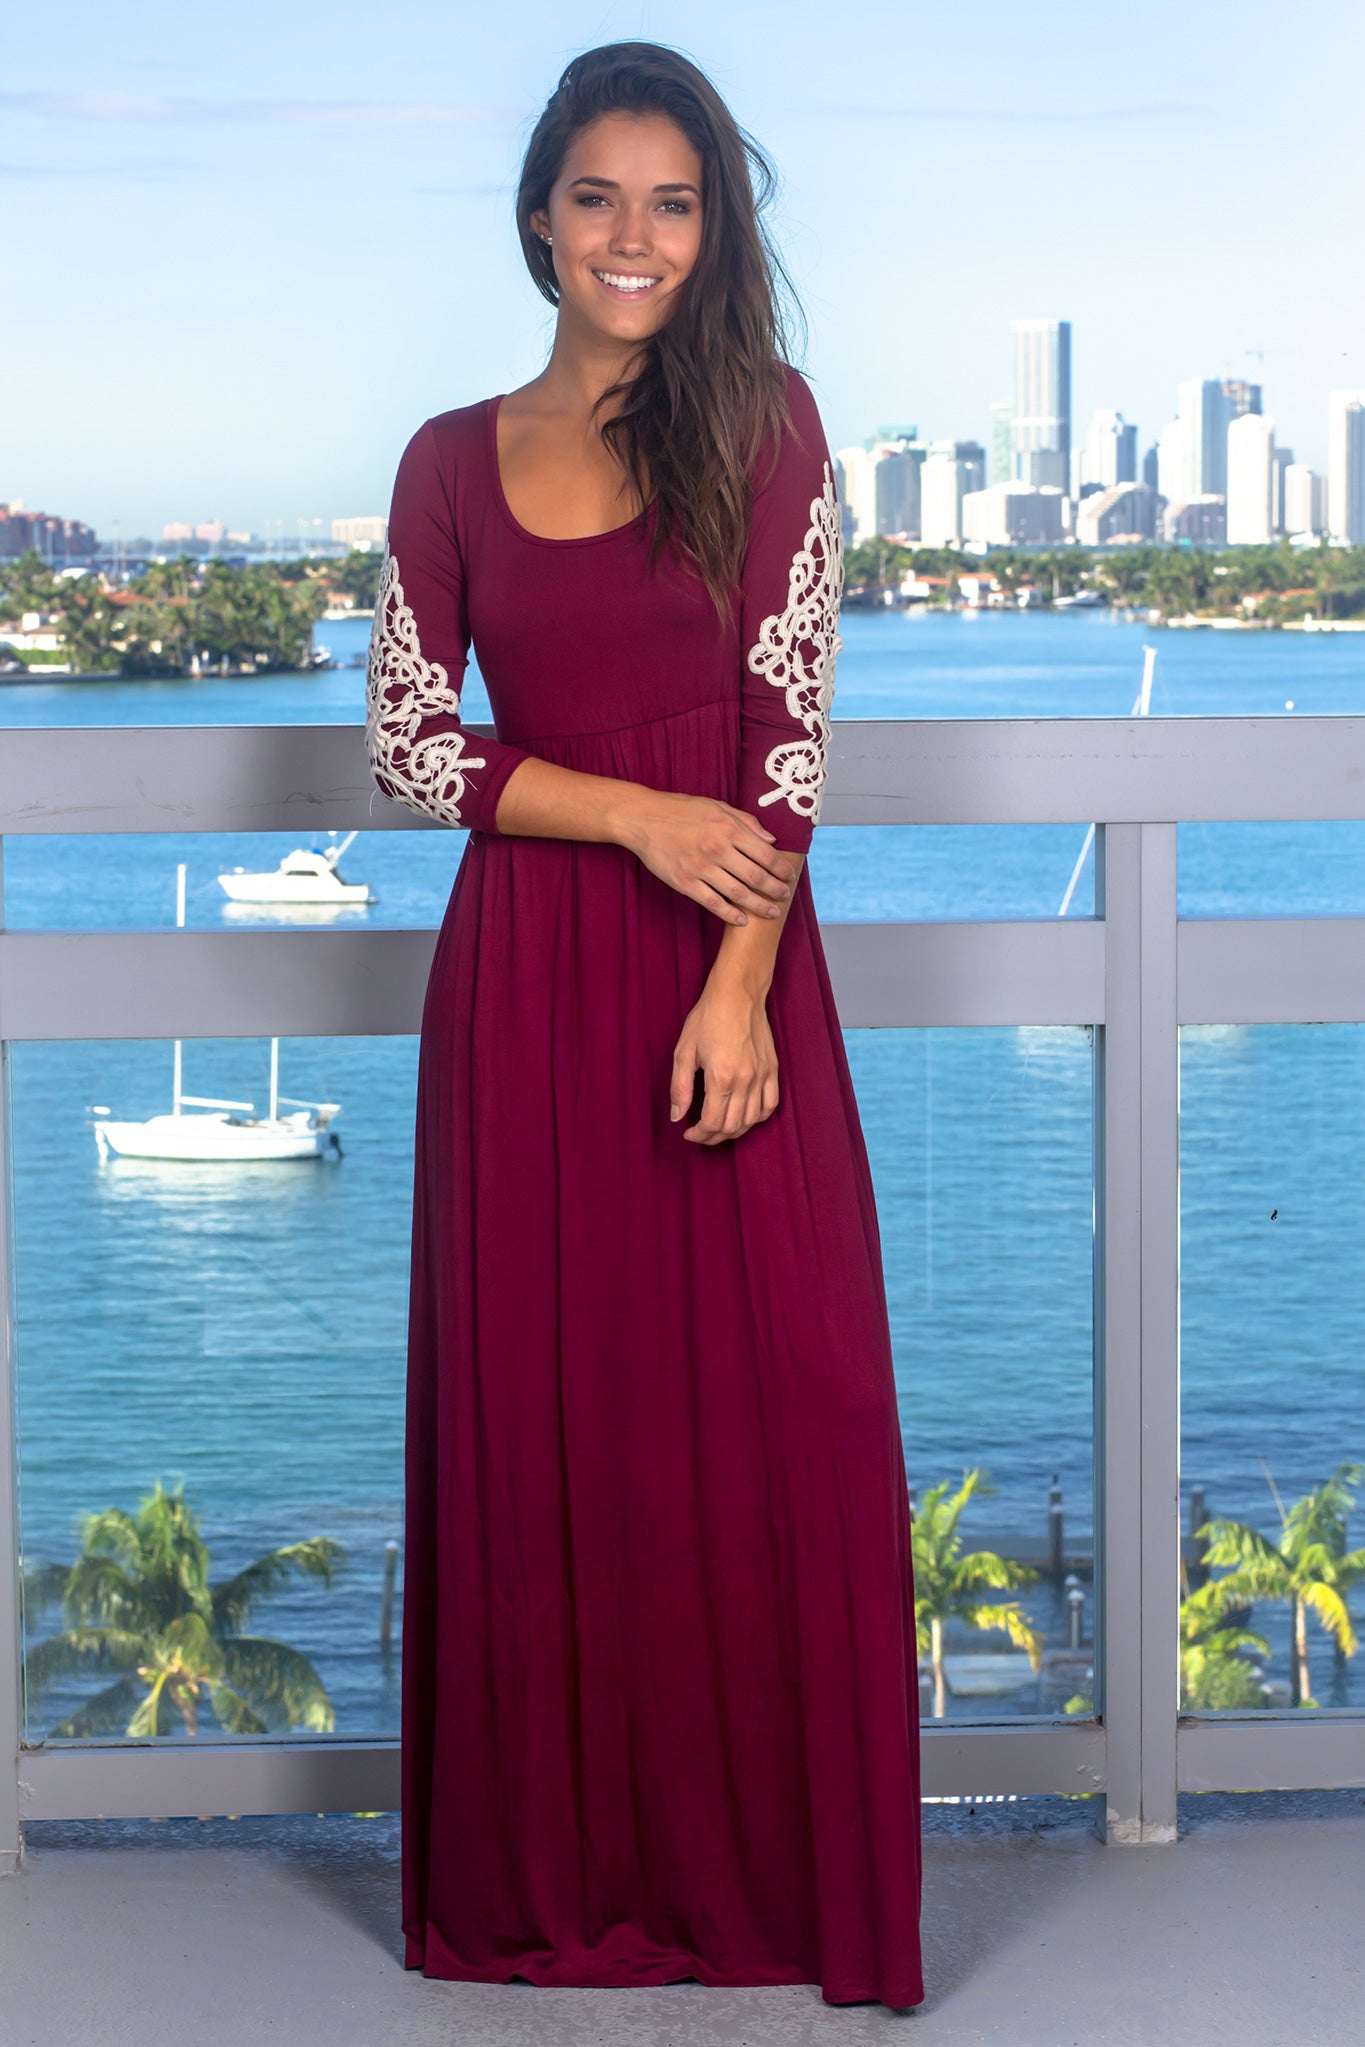 Burgundy Maxi Dress with 3/4 Sleeves and Crochet Detail